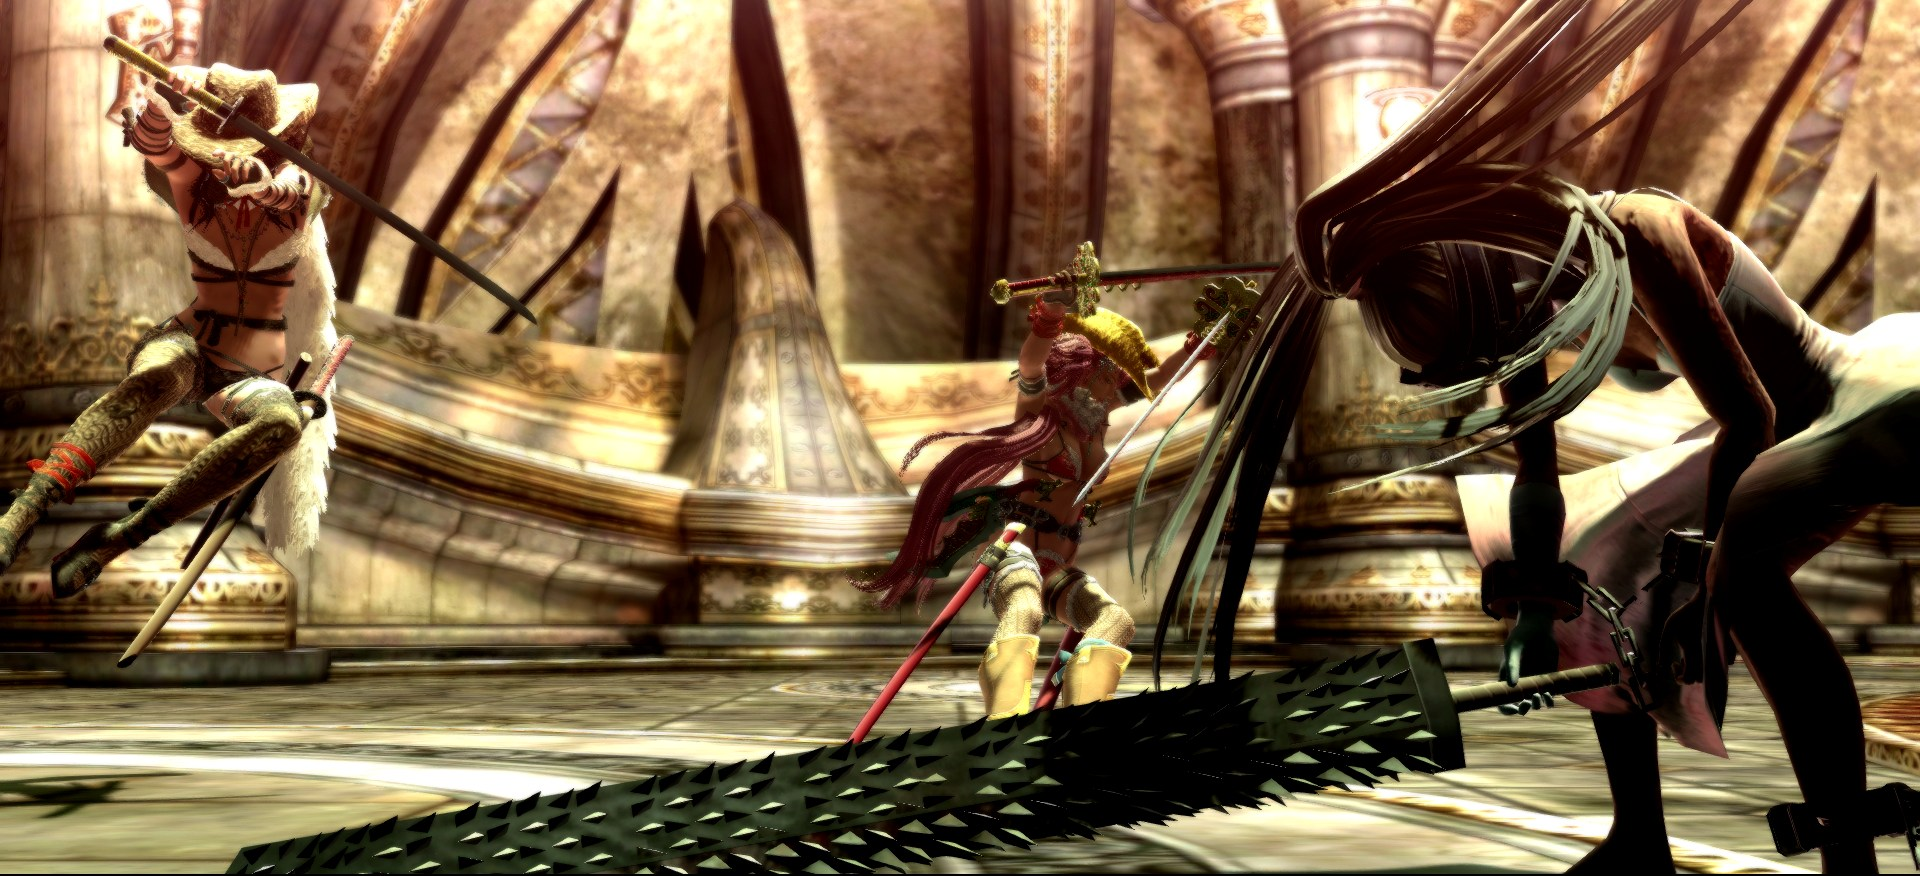 Onechanbara Z2 Chaos Gets A Street Date For July Blast Away The